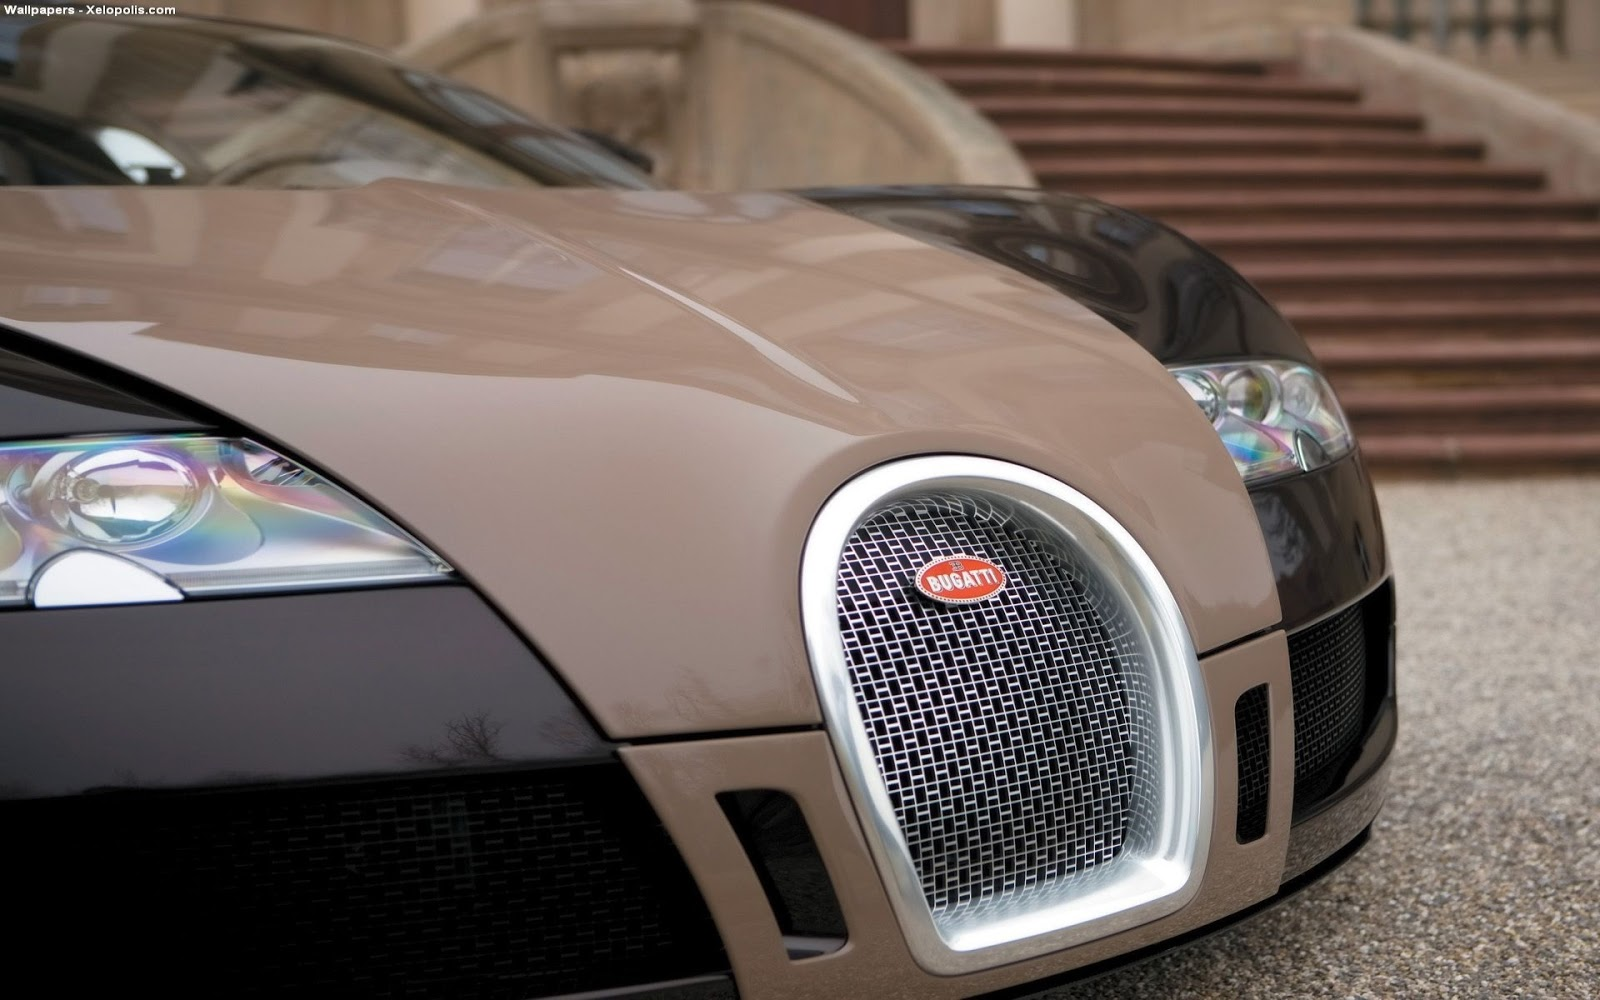 Bugatti Veyron Wallpaper Netcarshow Latest Cars Models Collection - Net car show